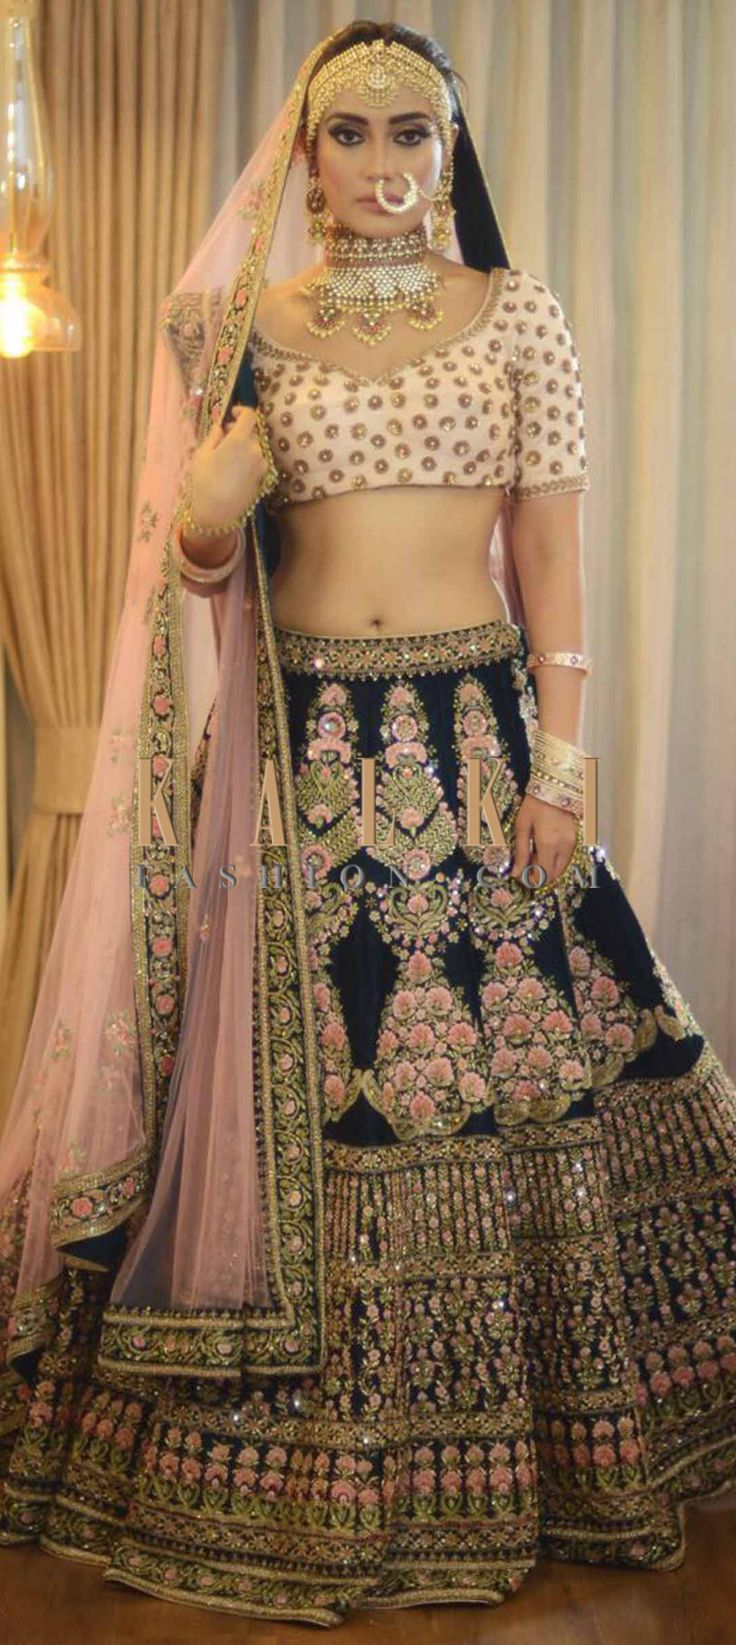 Buy Online from the link below. We ship worldwide (Free Shipping over US$100)  Click Anywhere to Tag Surbhi jyoti in Kalki dark green lehenga with peach blouse in resham embroideryDark green lehenga featuring in silk with peach blouse. Lehenga and blouse are embellished in resham, cut dana and sequin embroidery. Matched with embroidered dupatta in pink net.